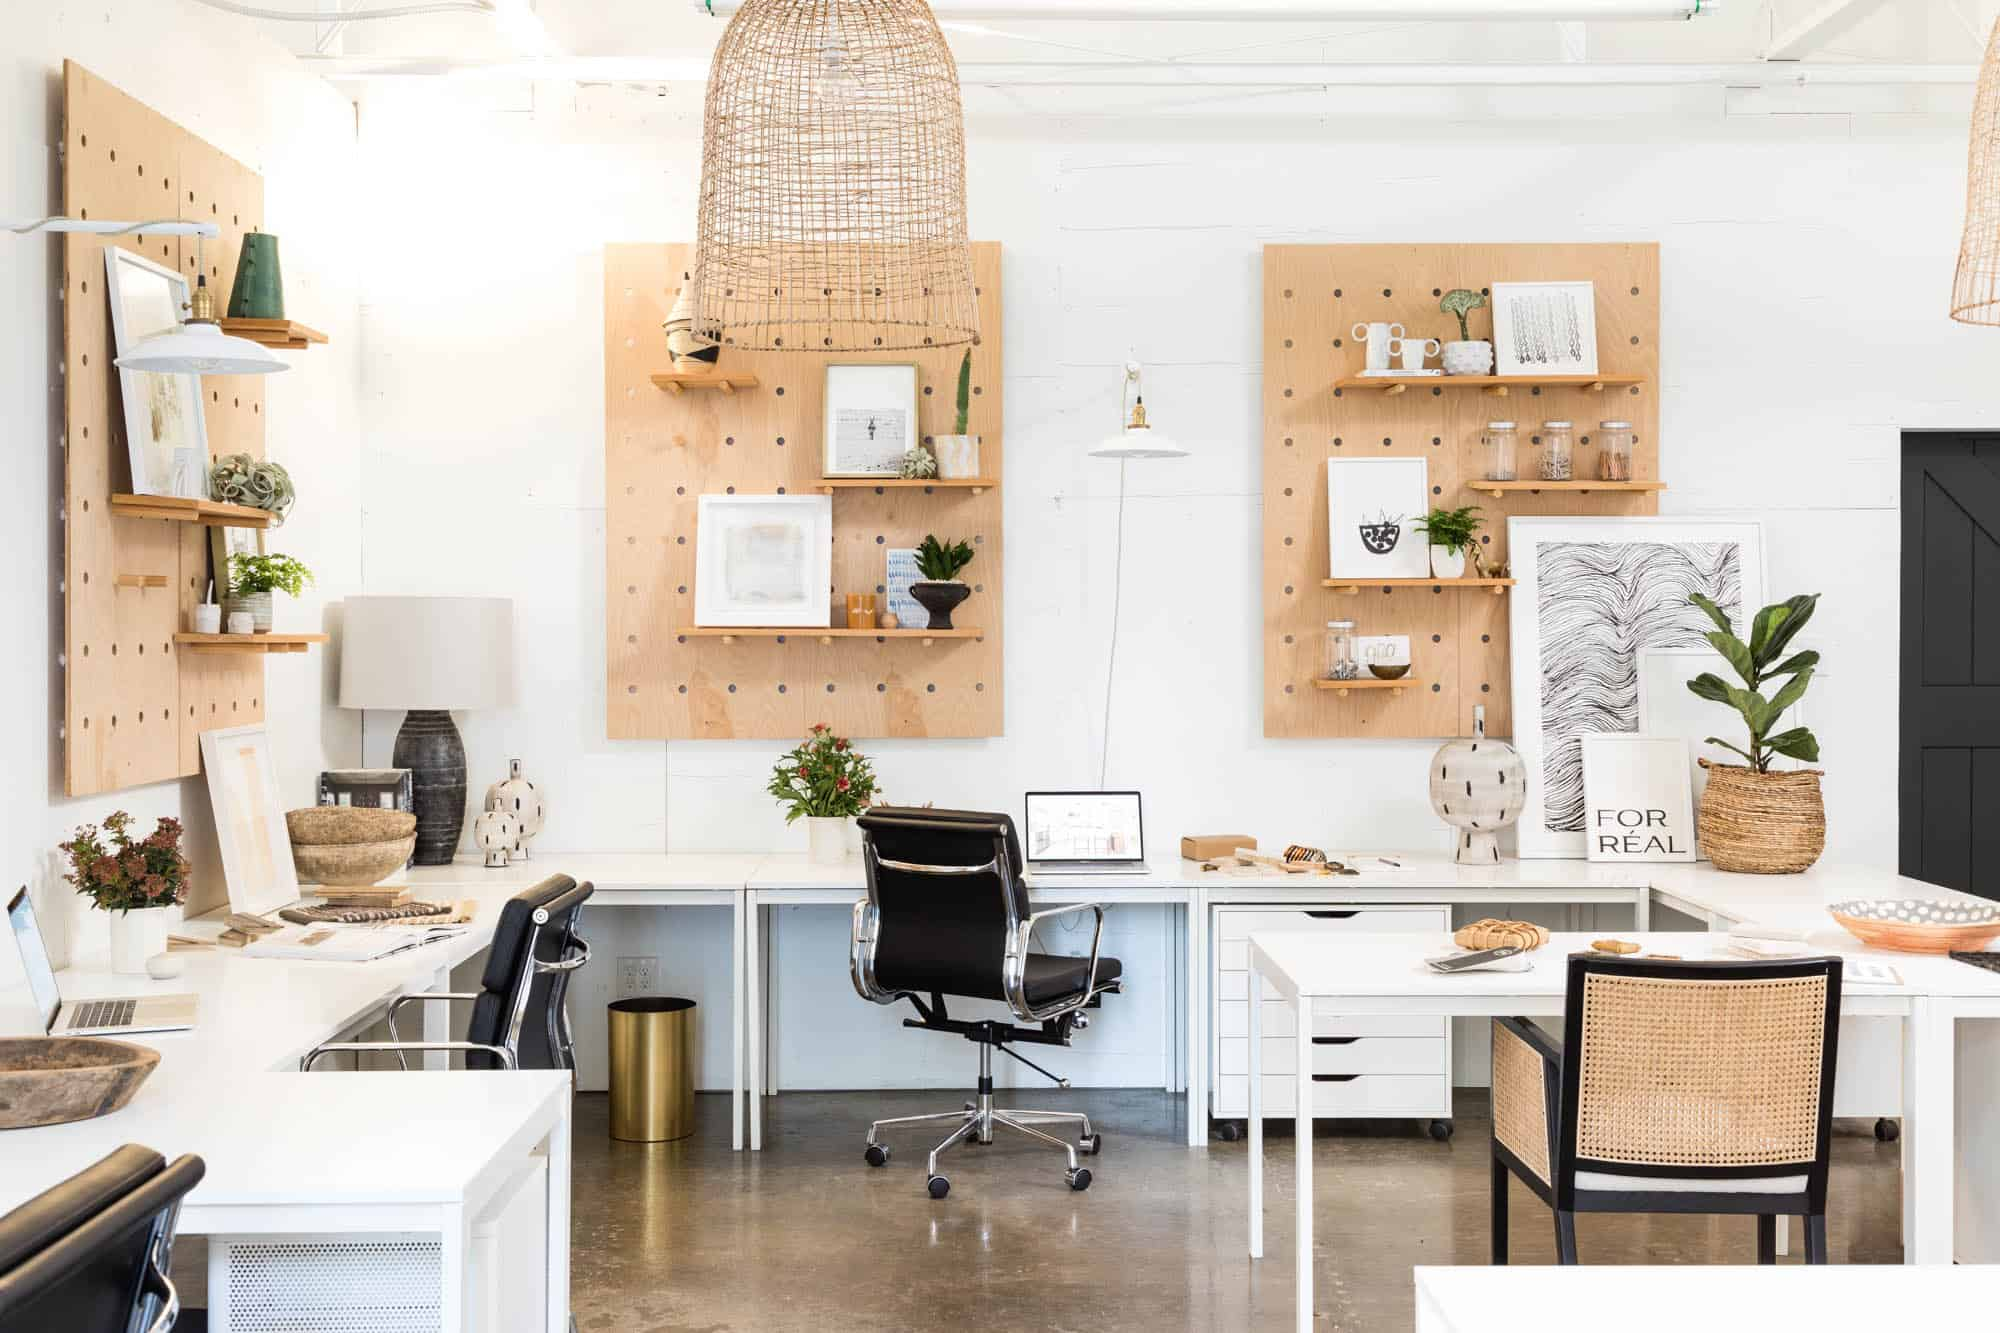 Design House Project Image - Desk & Chair Combinations - Mindy Gayer Design Co.